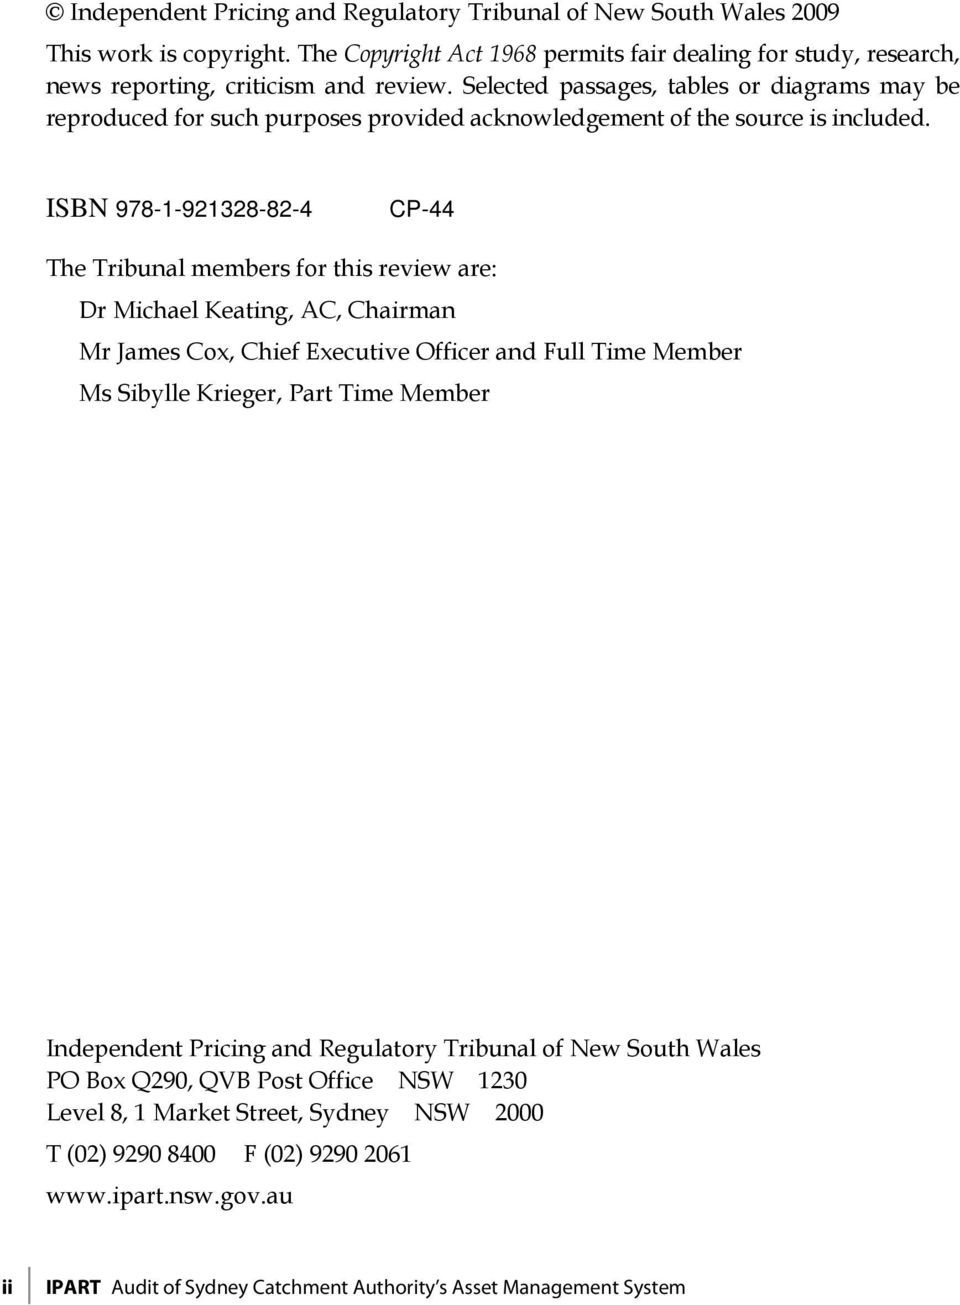 ISBN 978-1-921328-82-4 CP-44 The Tribunal members for this review are: Dr Michael Keating, AC, Chairman Mr James Cox, Chief Executive Officer and Full Time Member Ms Sibylle Krieger, Part Time